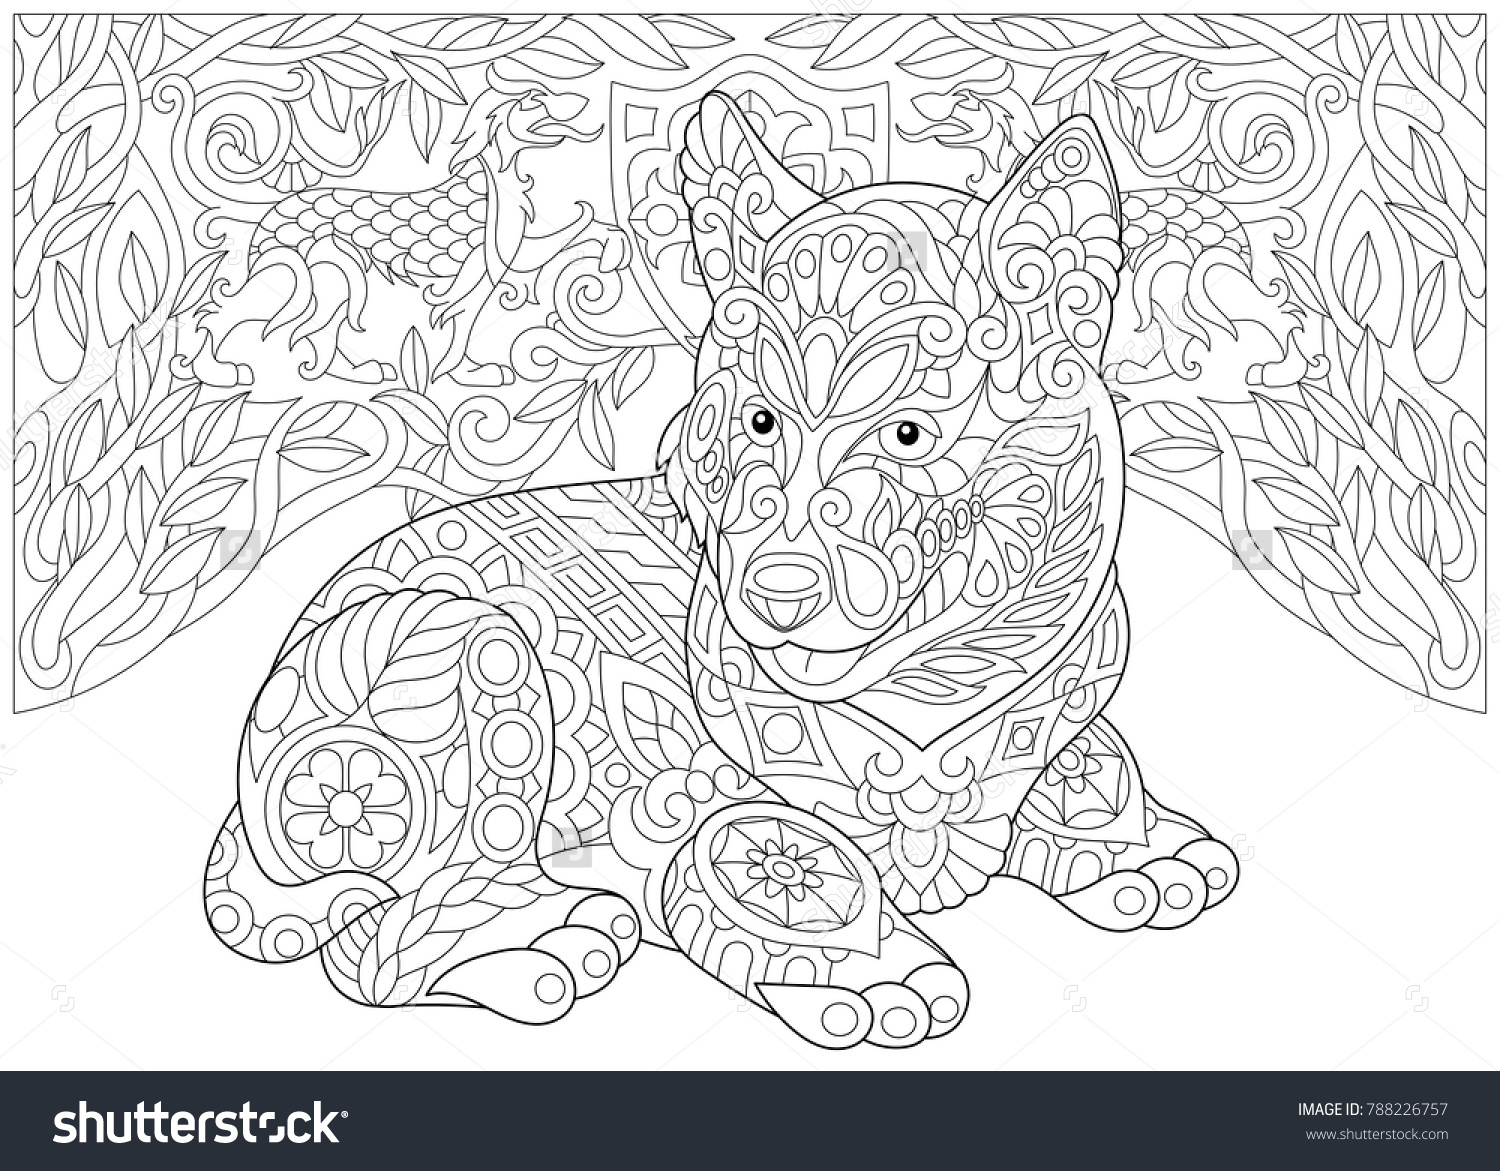 Coloring Page Adult Coloring Book Siberian Stock Vector (Royalty ...